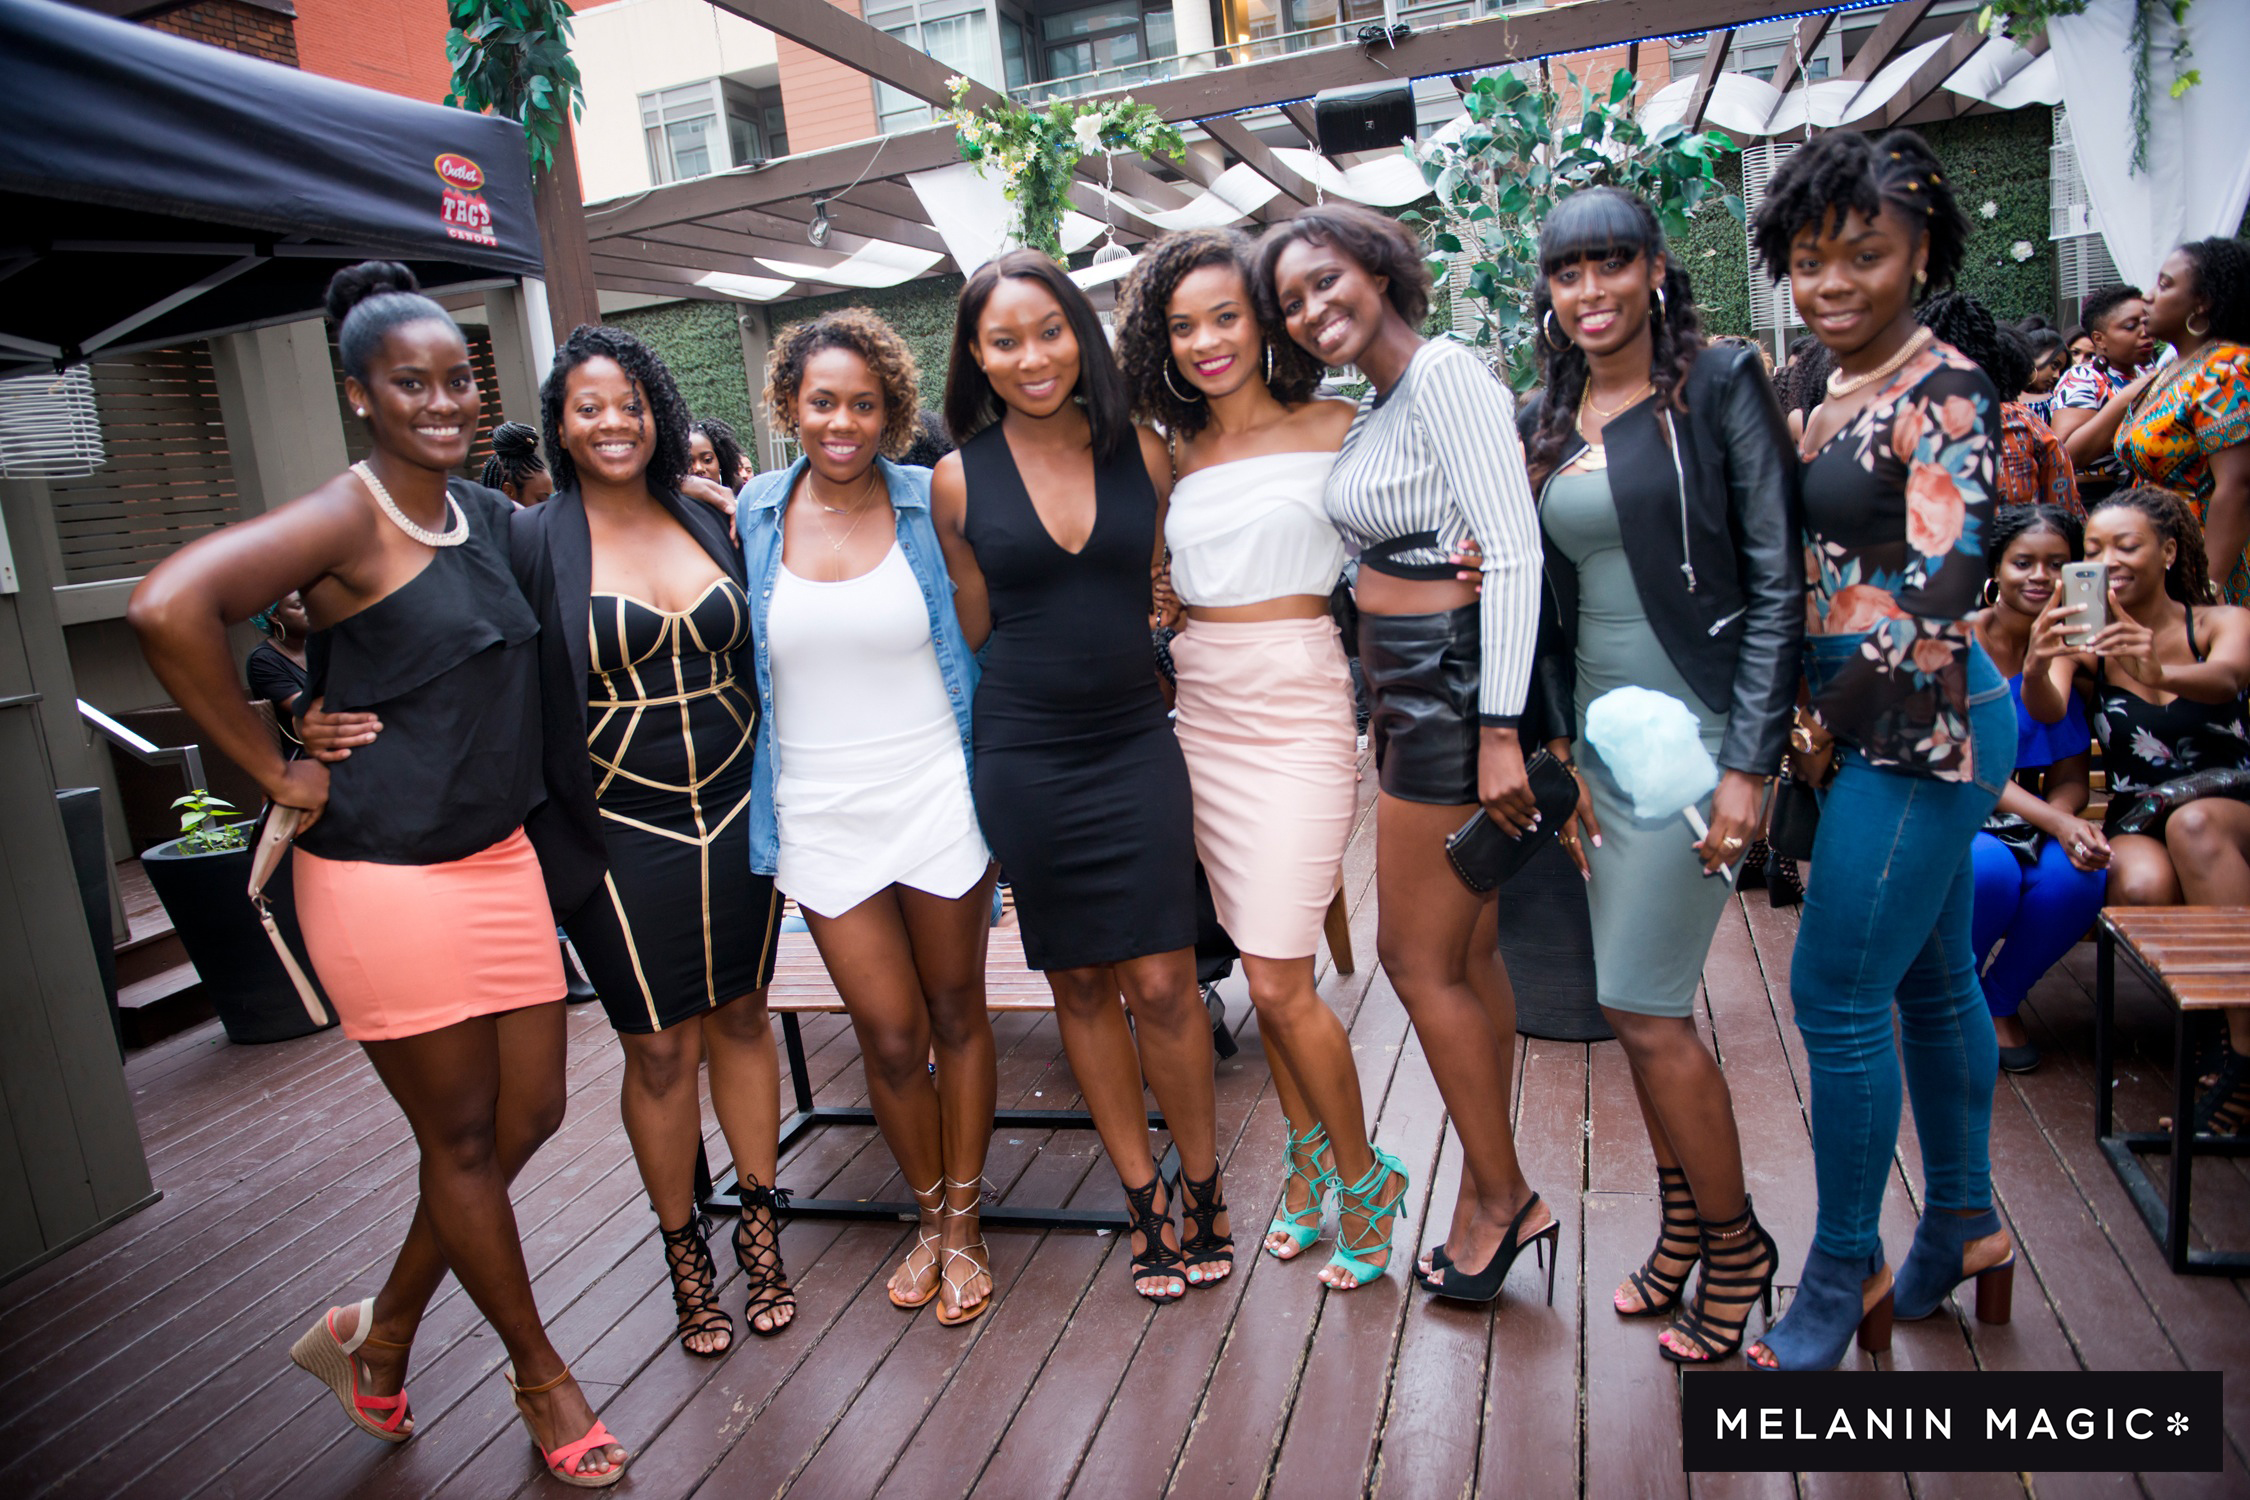 MELANIN MAGIC | The Patio  (3/3)